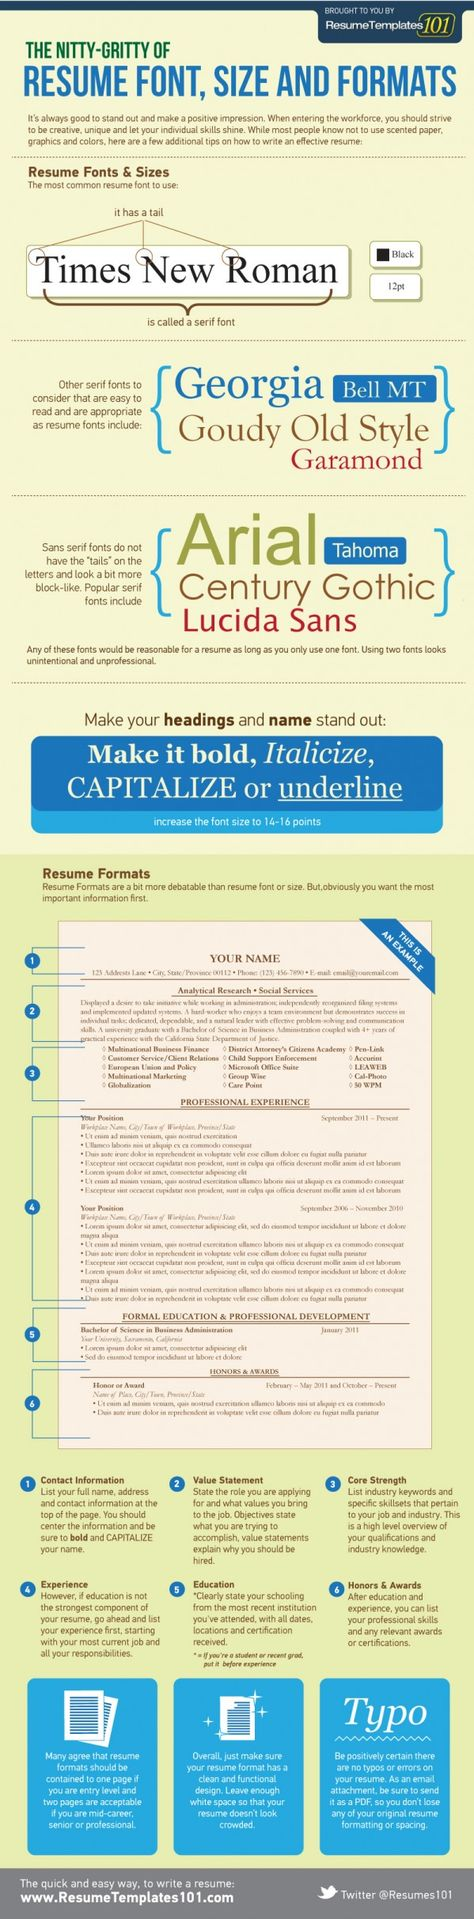 Best Fonts and Proper Font Size for Resumes